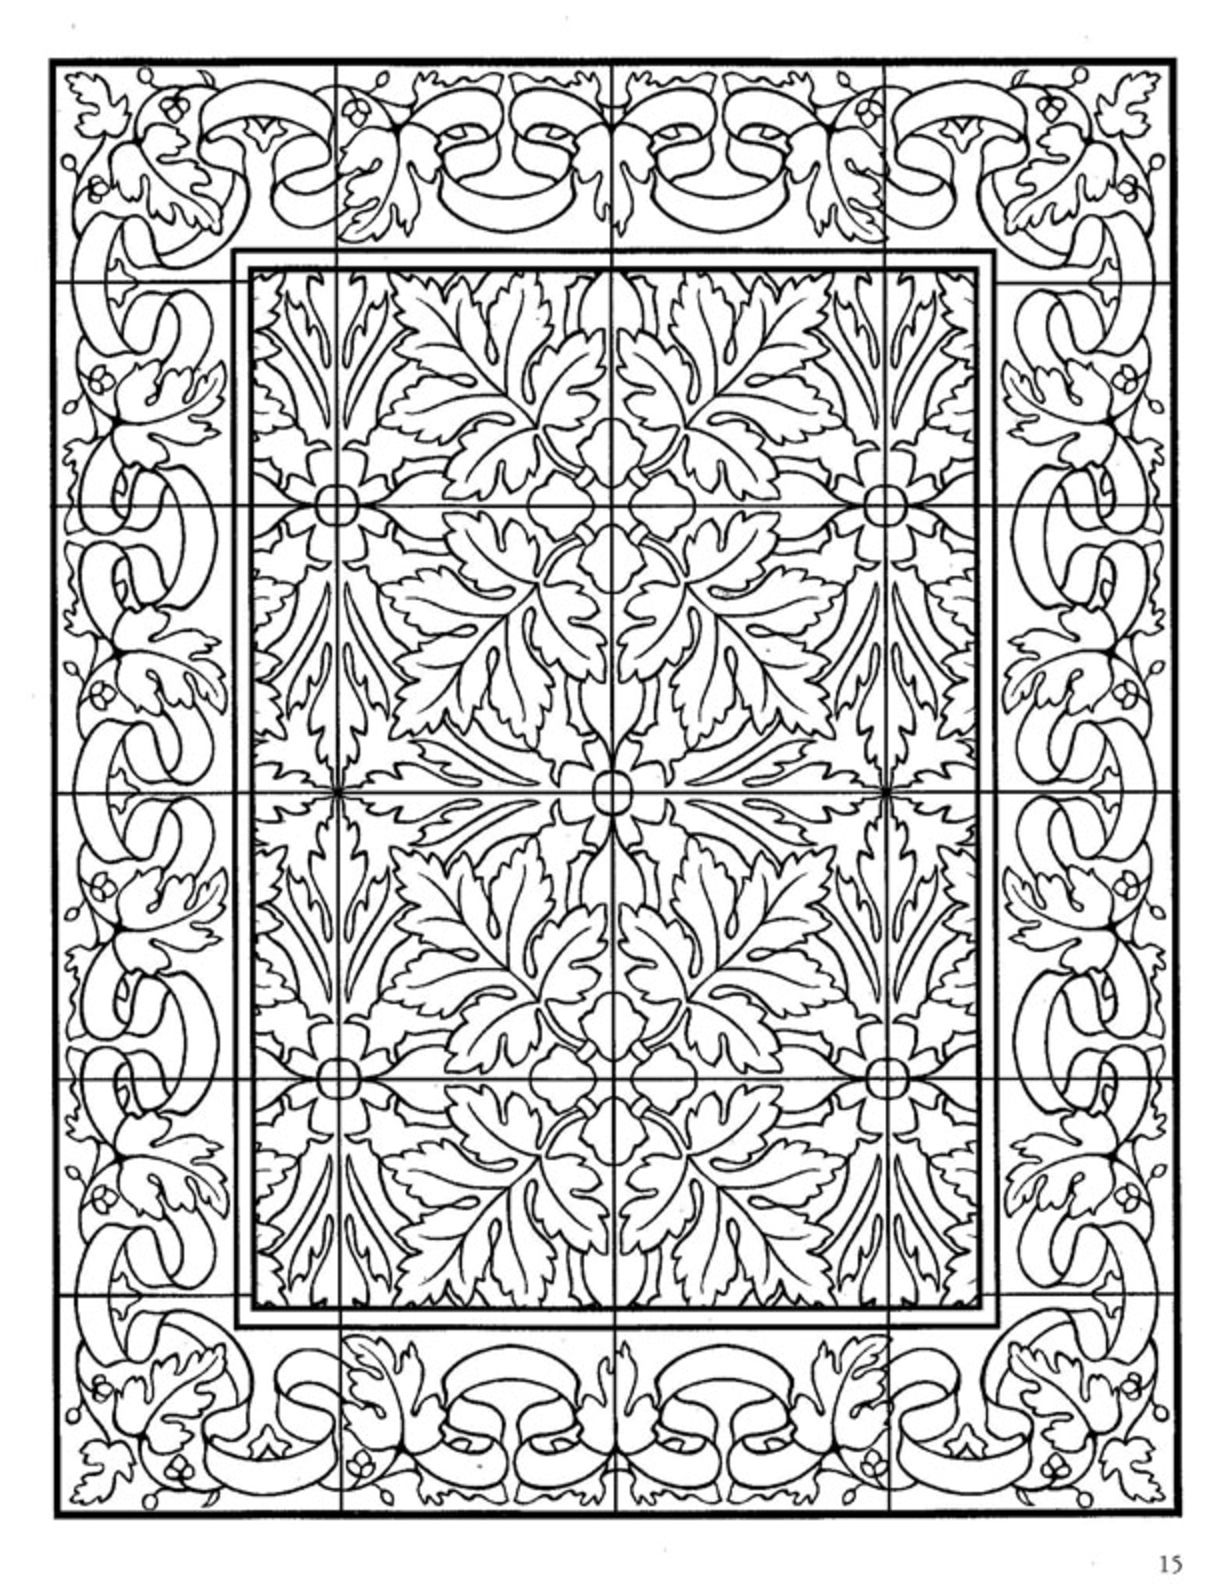 zentangle tile template - dover decorative tile coloring book dover coloring